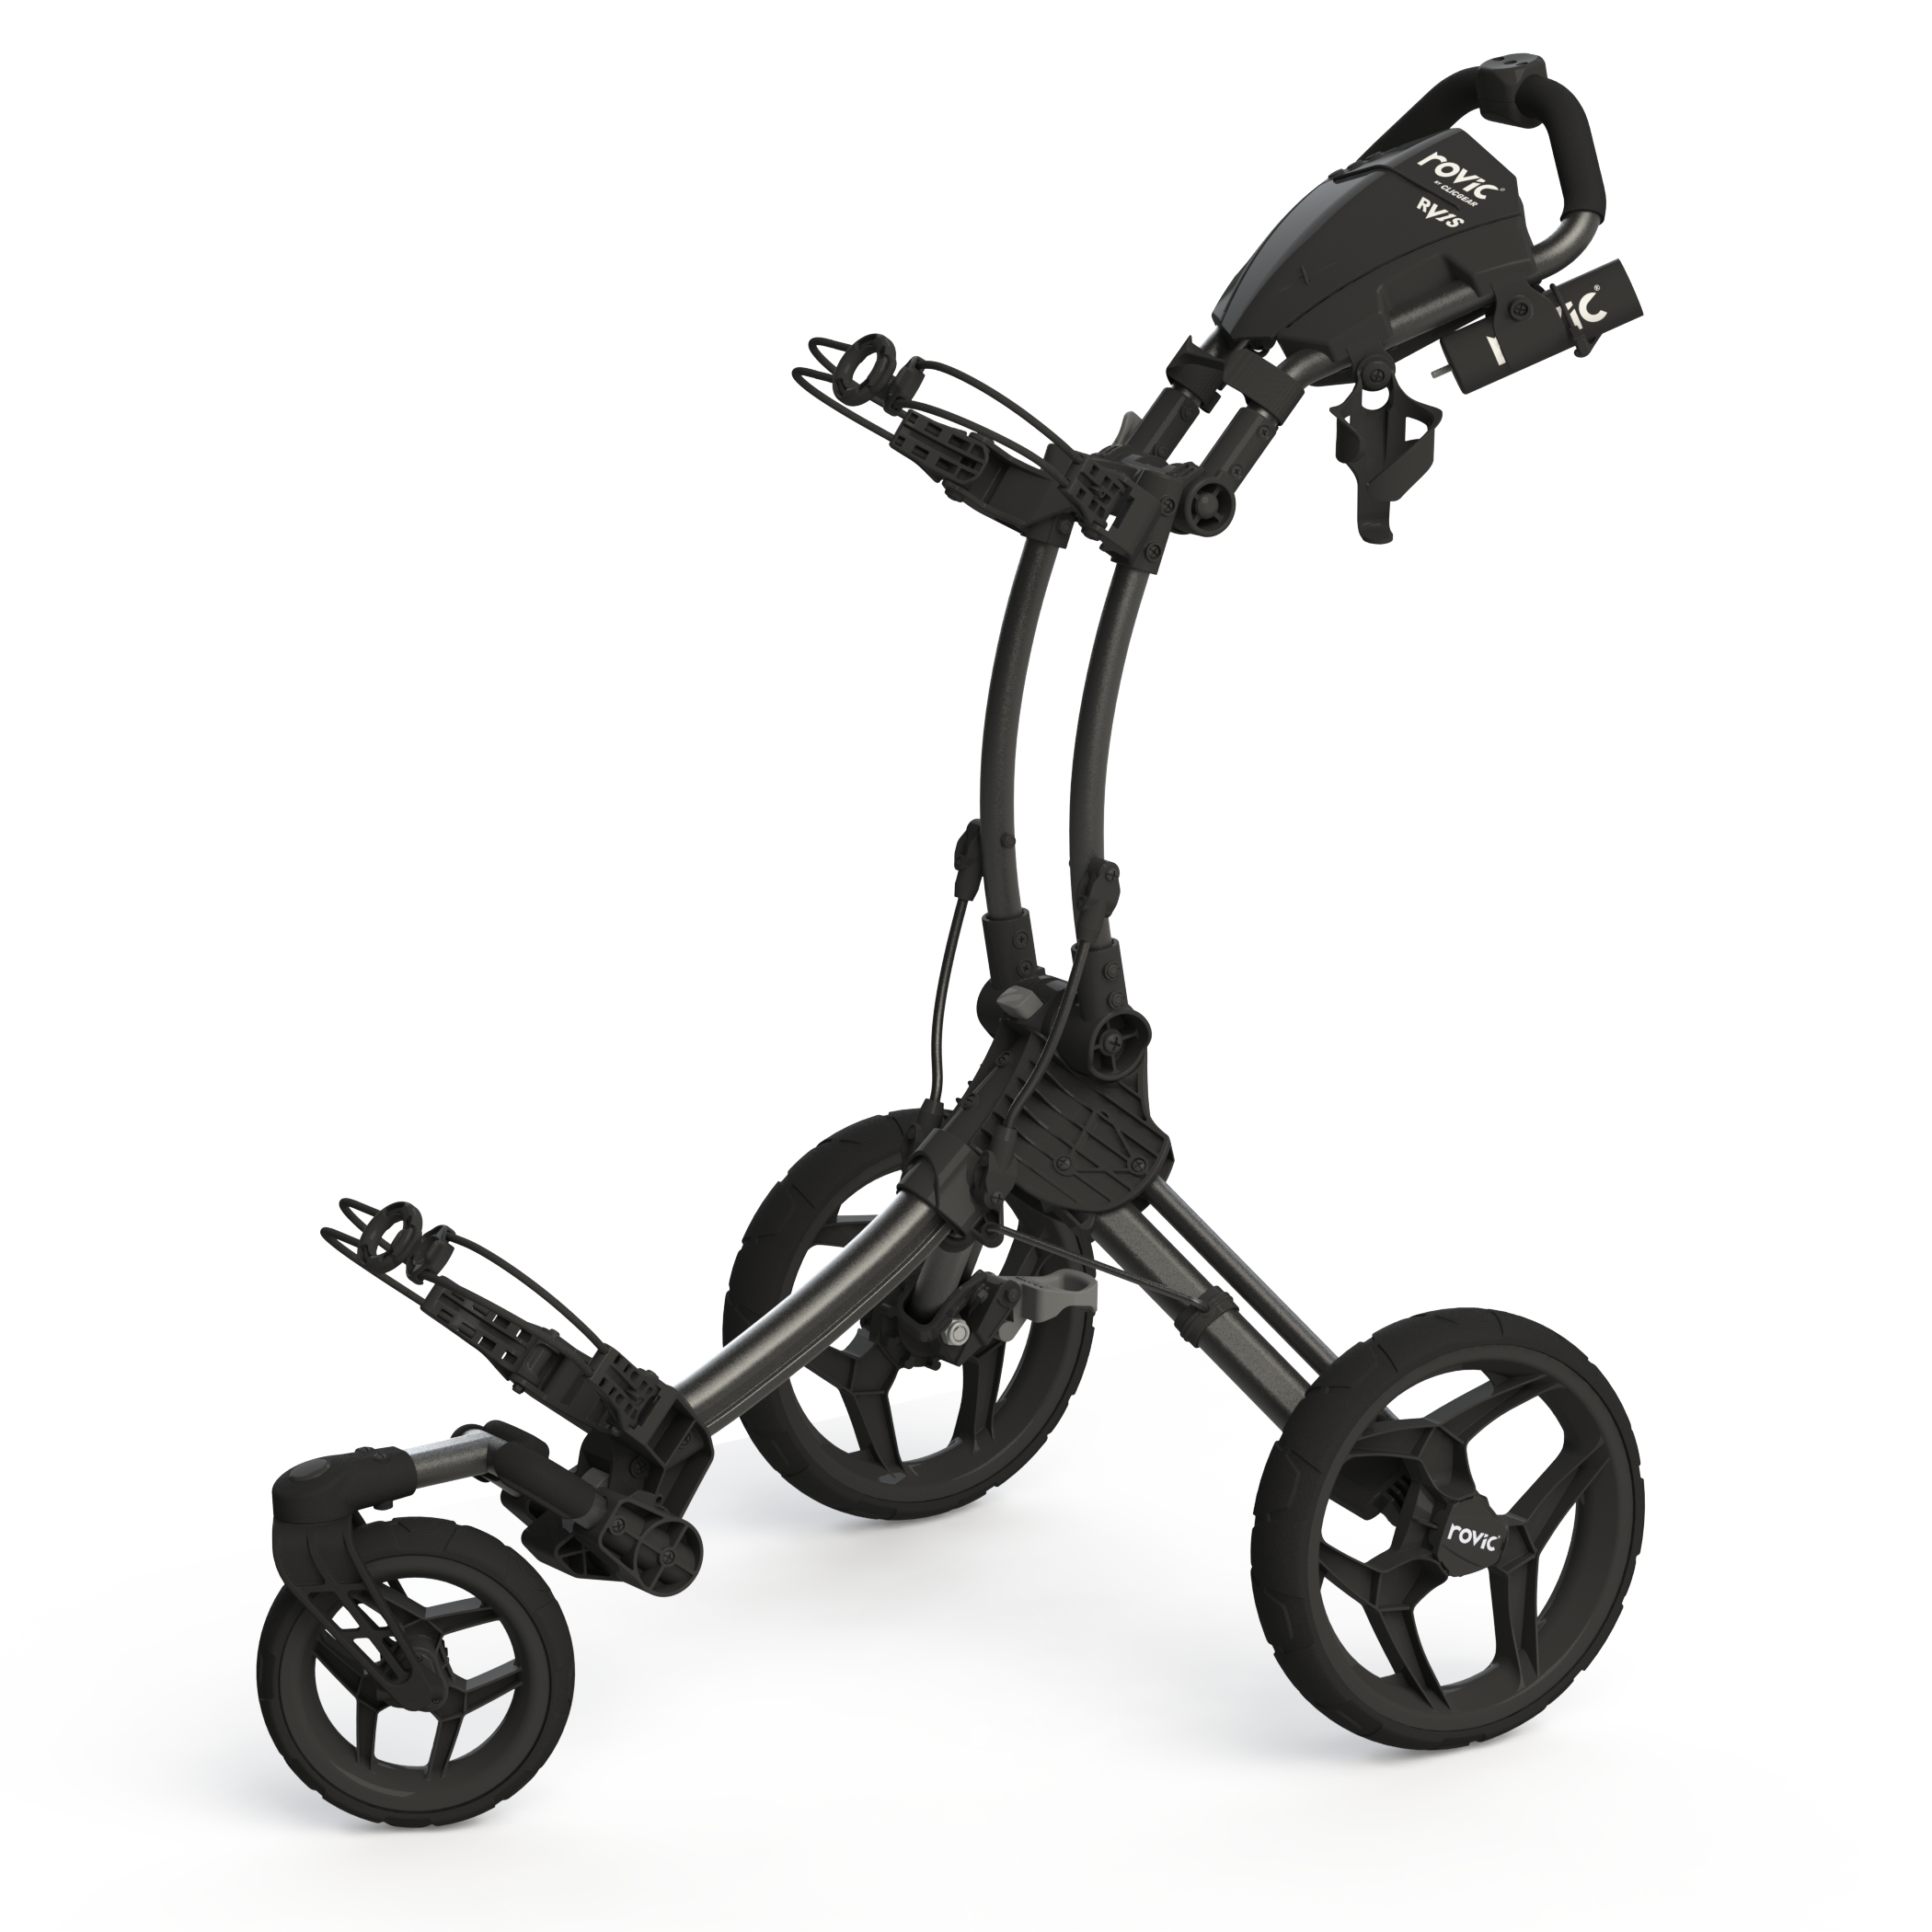 Rovic by Clicgear RV1S Swivel 3-Wheel Golf Push Cart (Charcoal/Black)